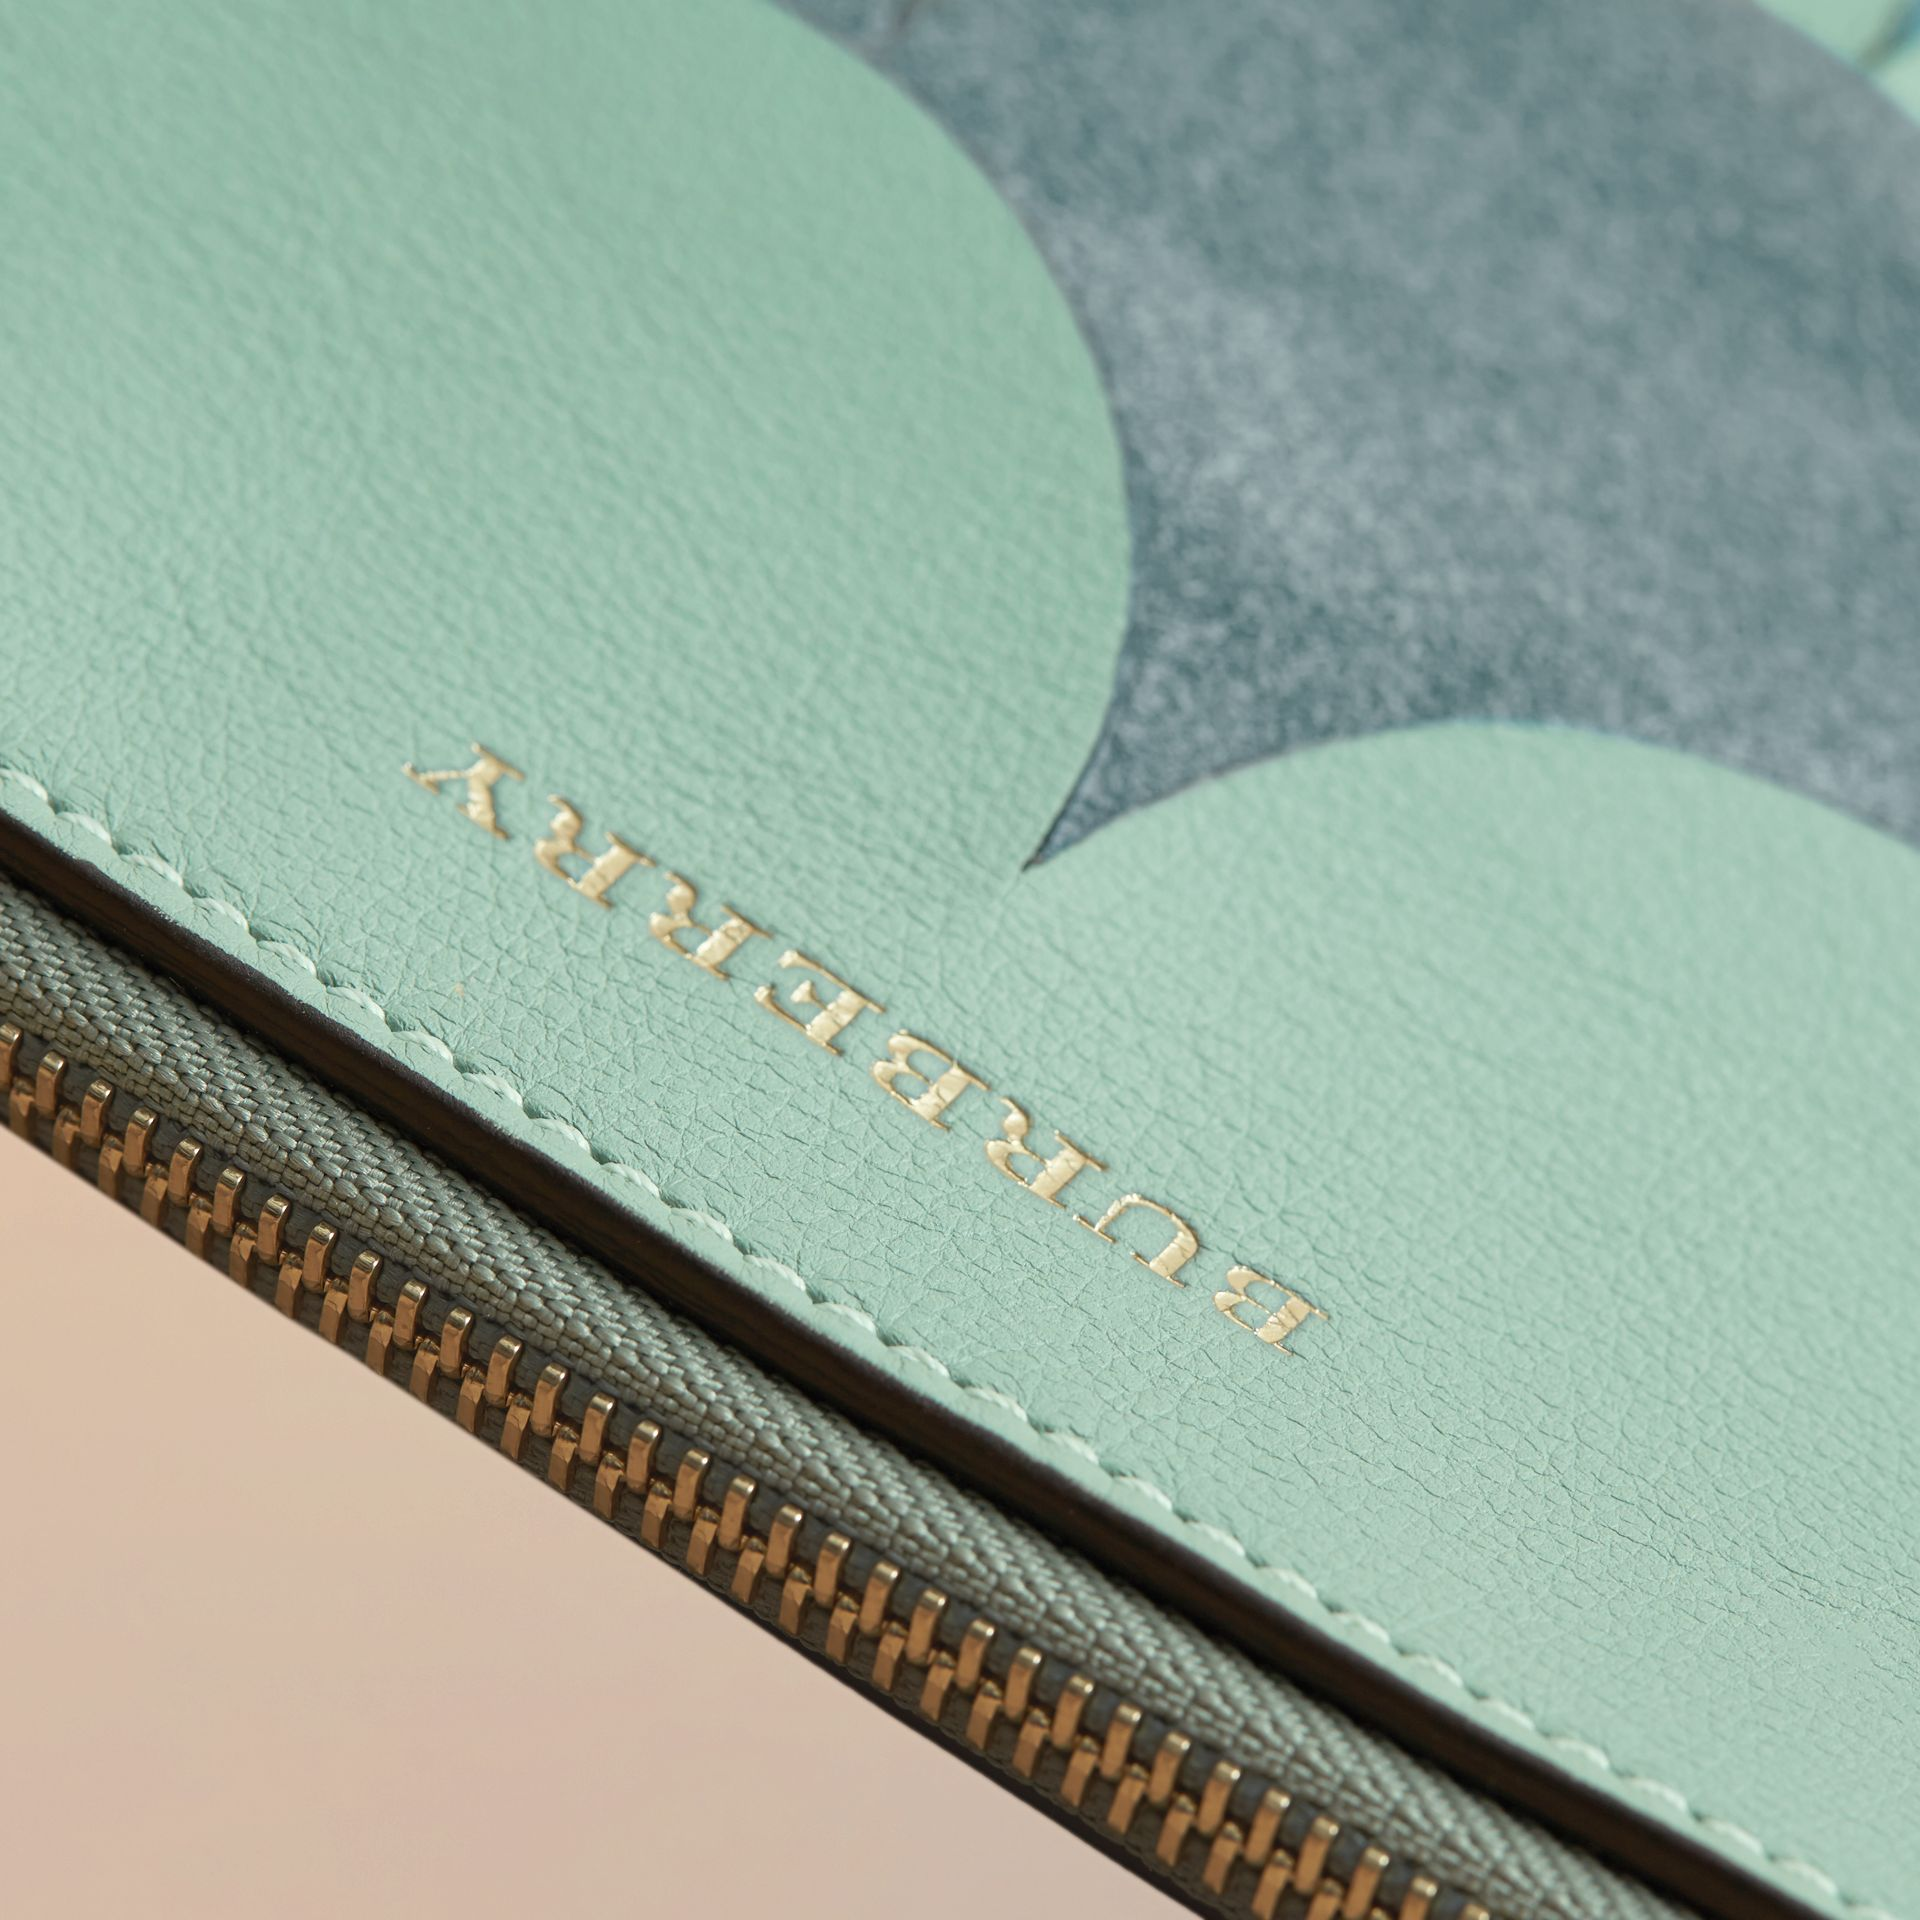 Two-tone Scalloped Leather and Suede Clutch Bag in Celadon Green - Women | Burberry United States - gallery image 7